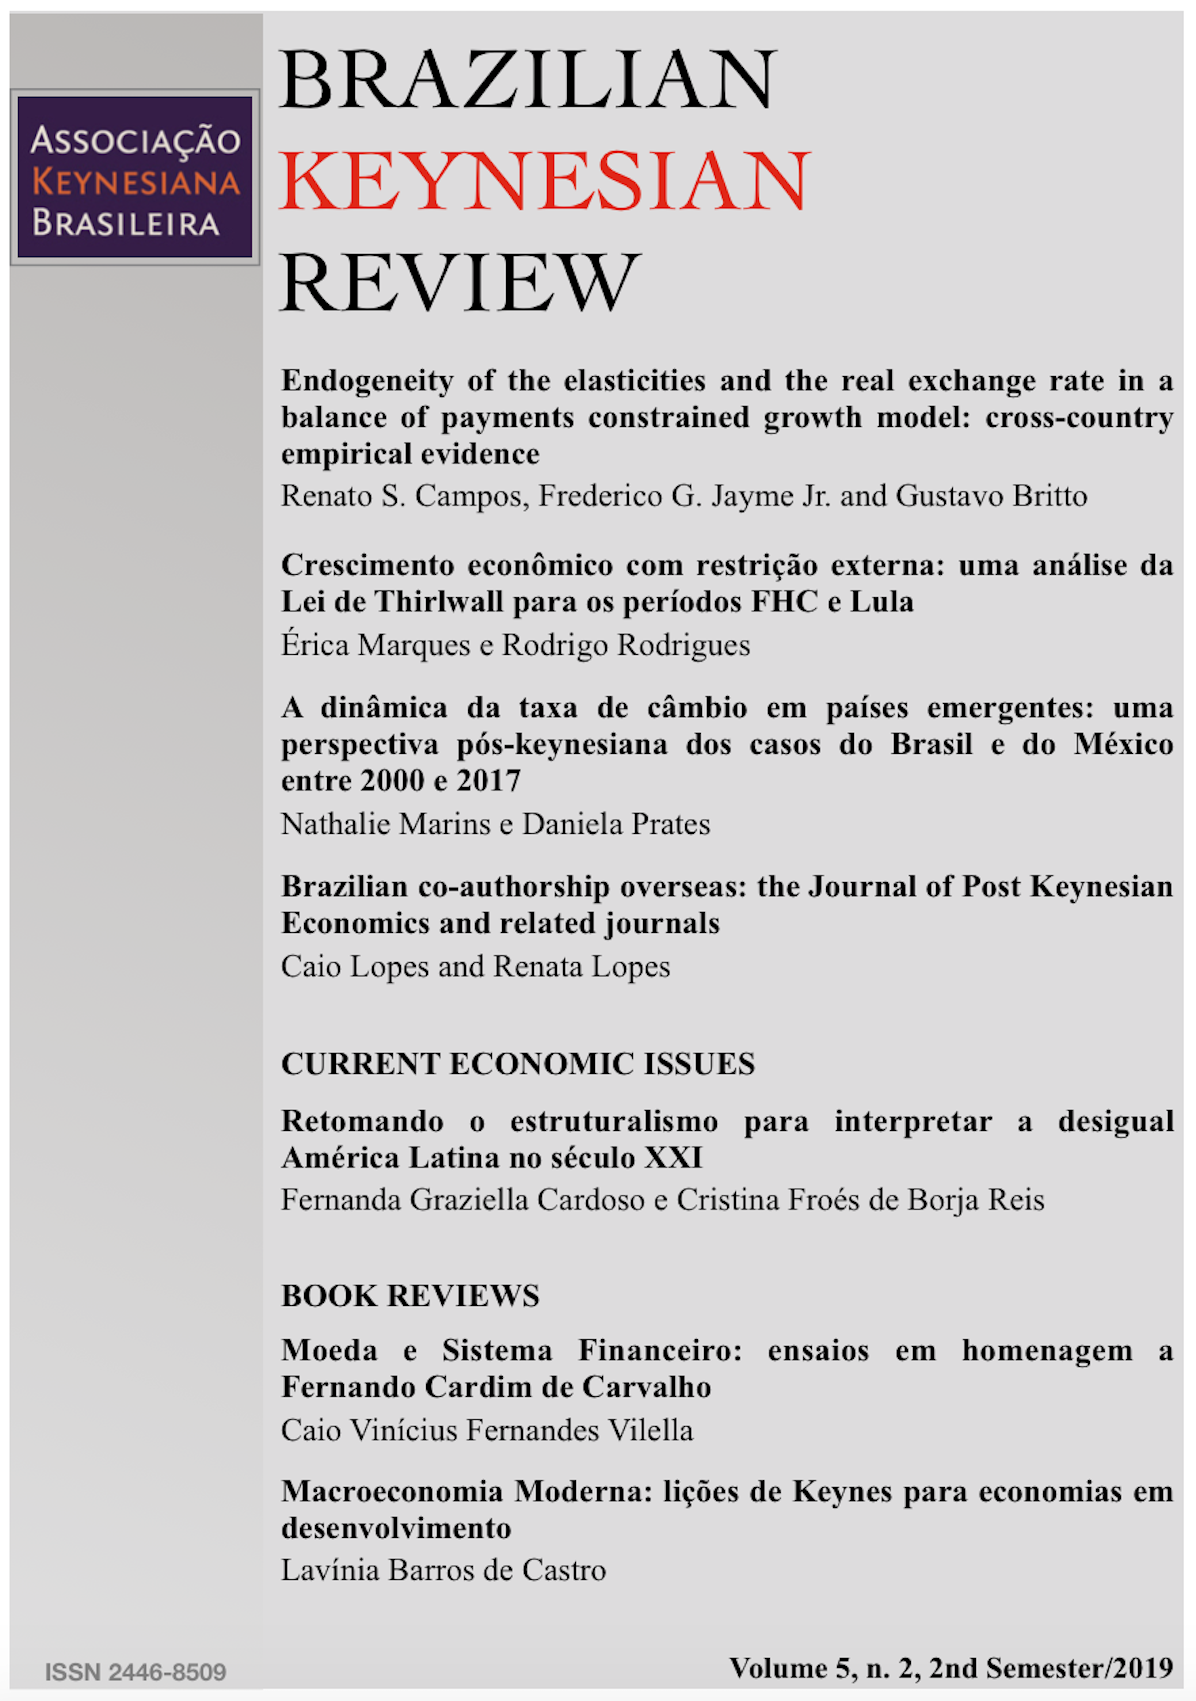 Front page of Brazilian Keynesian Review volume 5 number 2